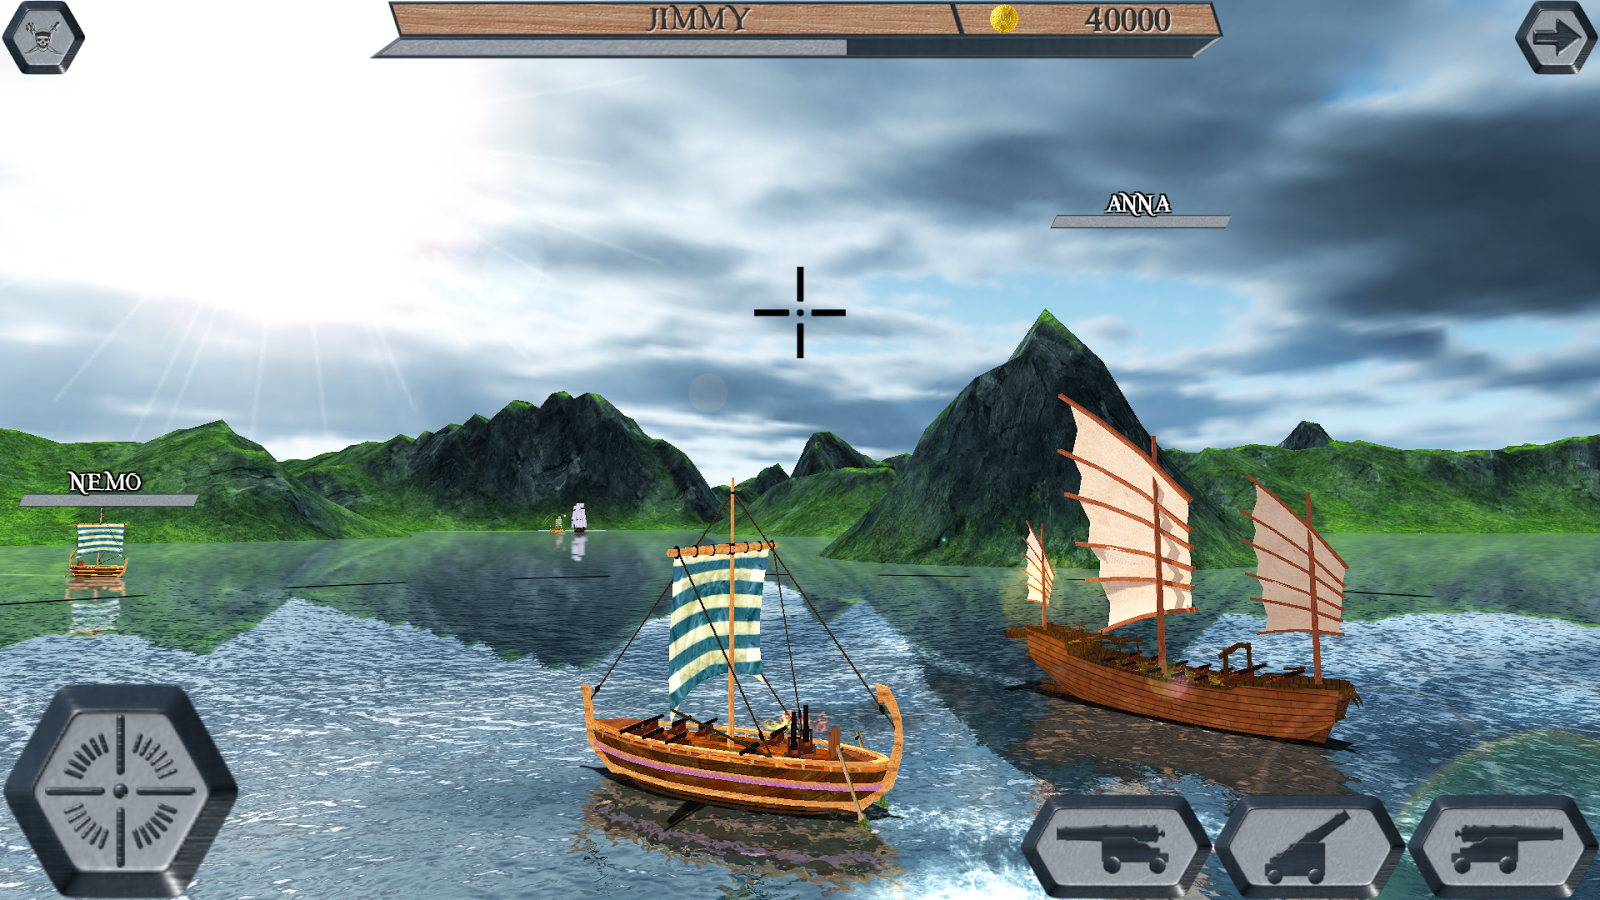 World Of Pirate Ships Screenshot 2